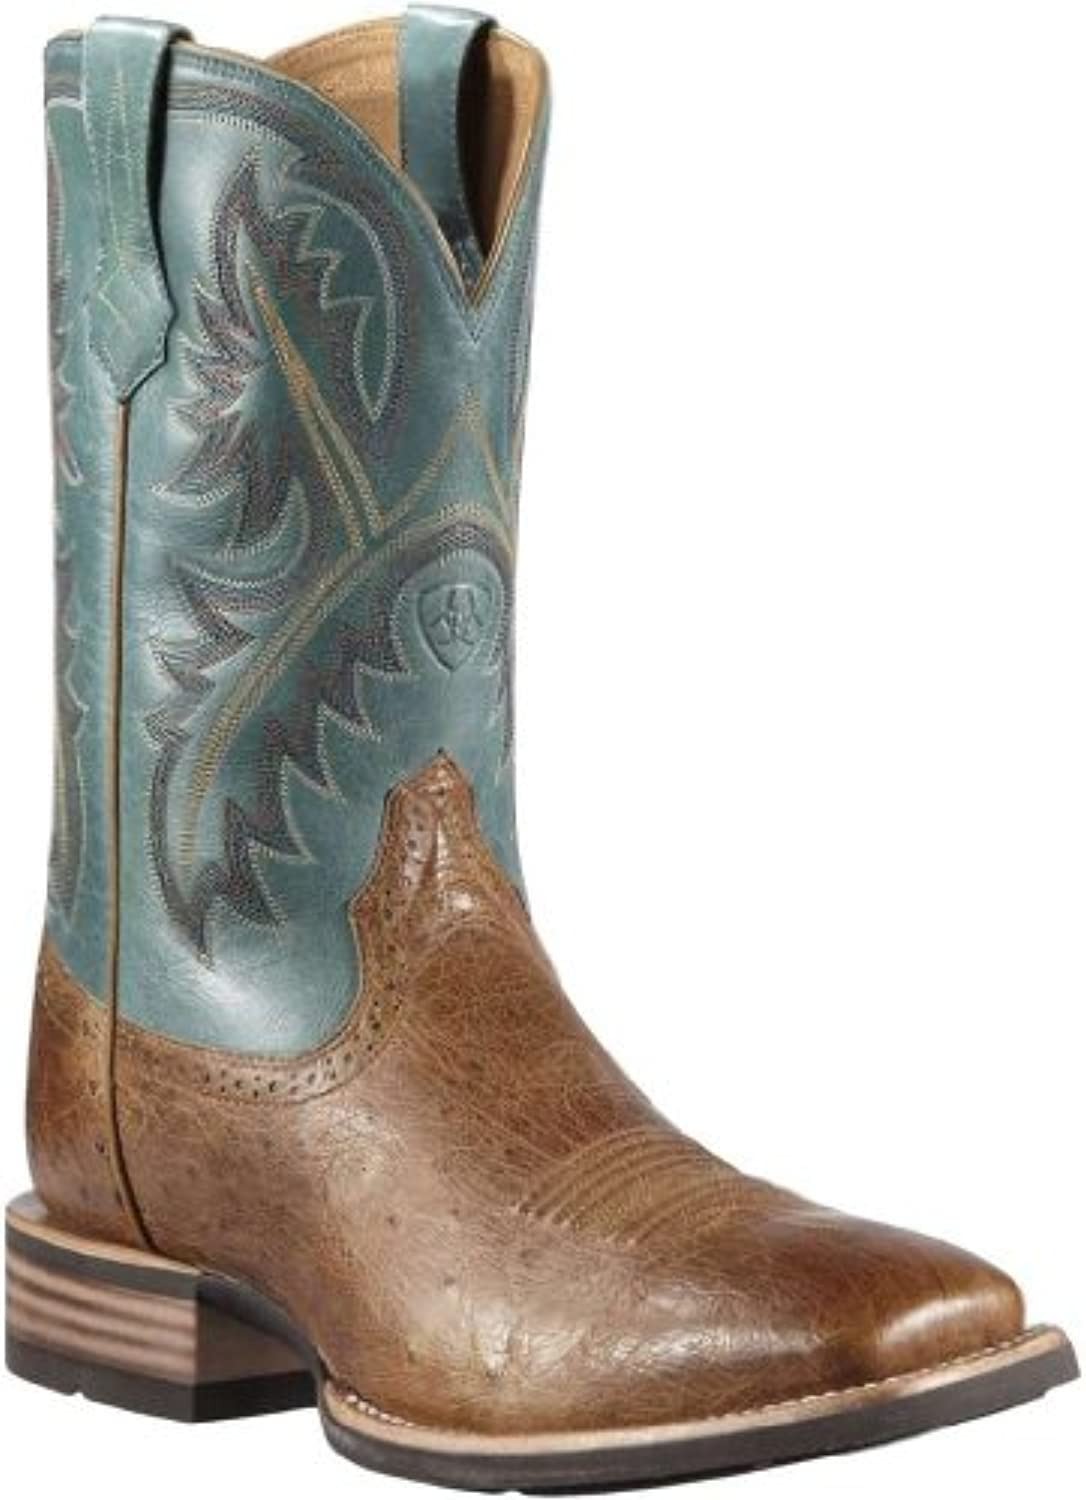 4340f5a4b56 Ariat Men's Smooth Quill Ostrich Quickdraw Cowboy Boot Square Toe Tan 12  D(M) US | $223.99 - Buy today!